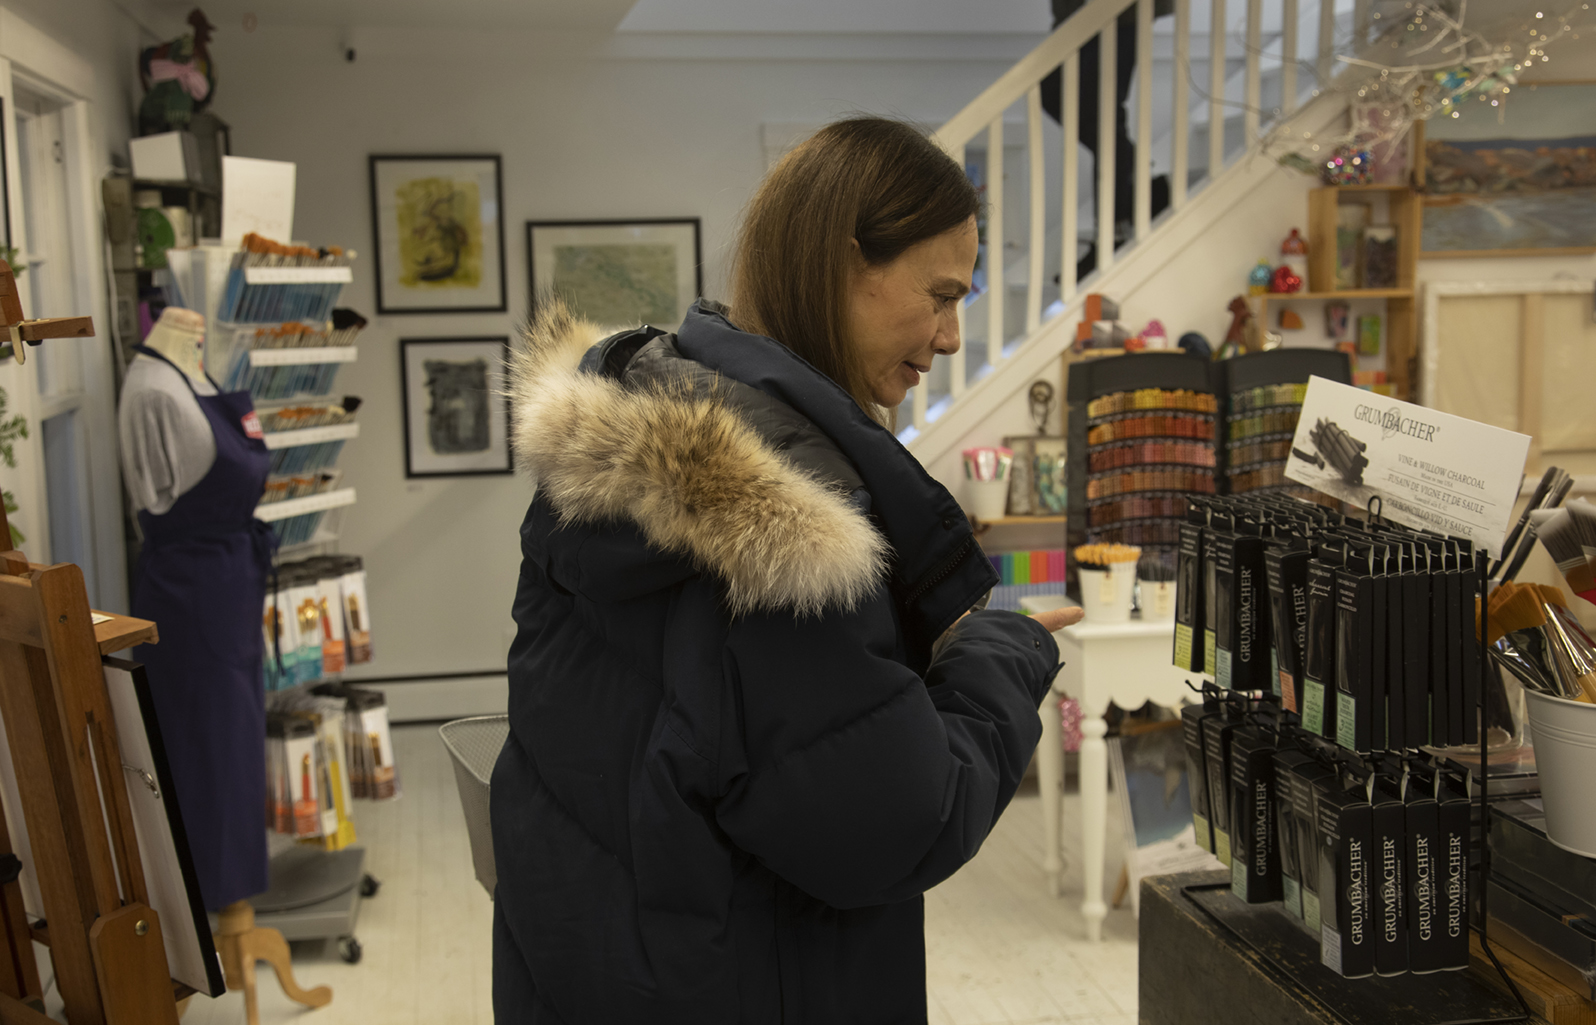 Claire (Lena Olin) shops for art supplies for herself in THE ARTIST'S WIFE. Photo by Michael Lavine.